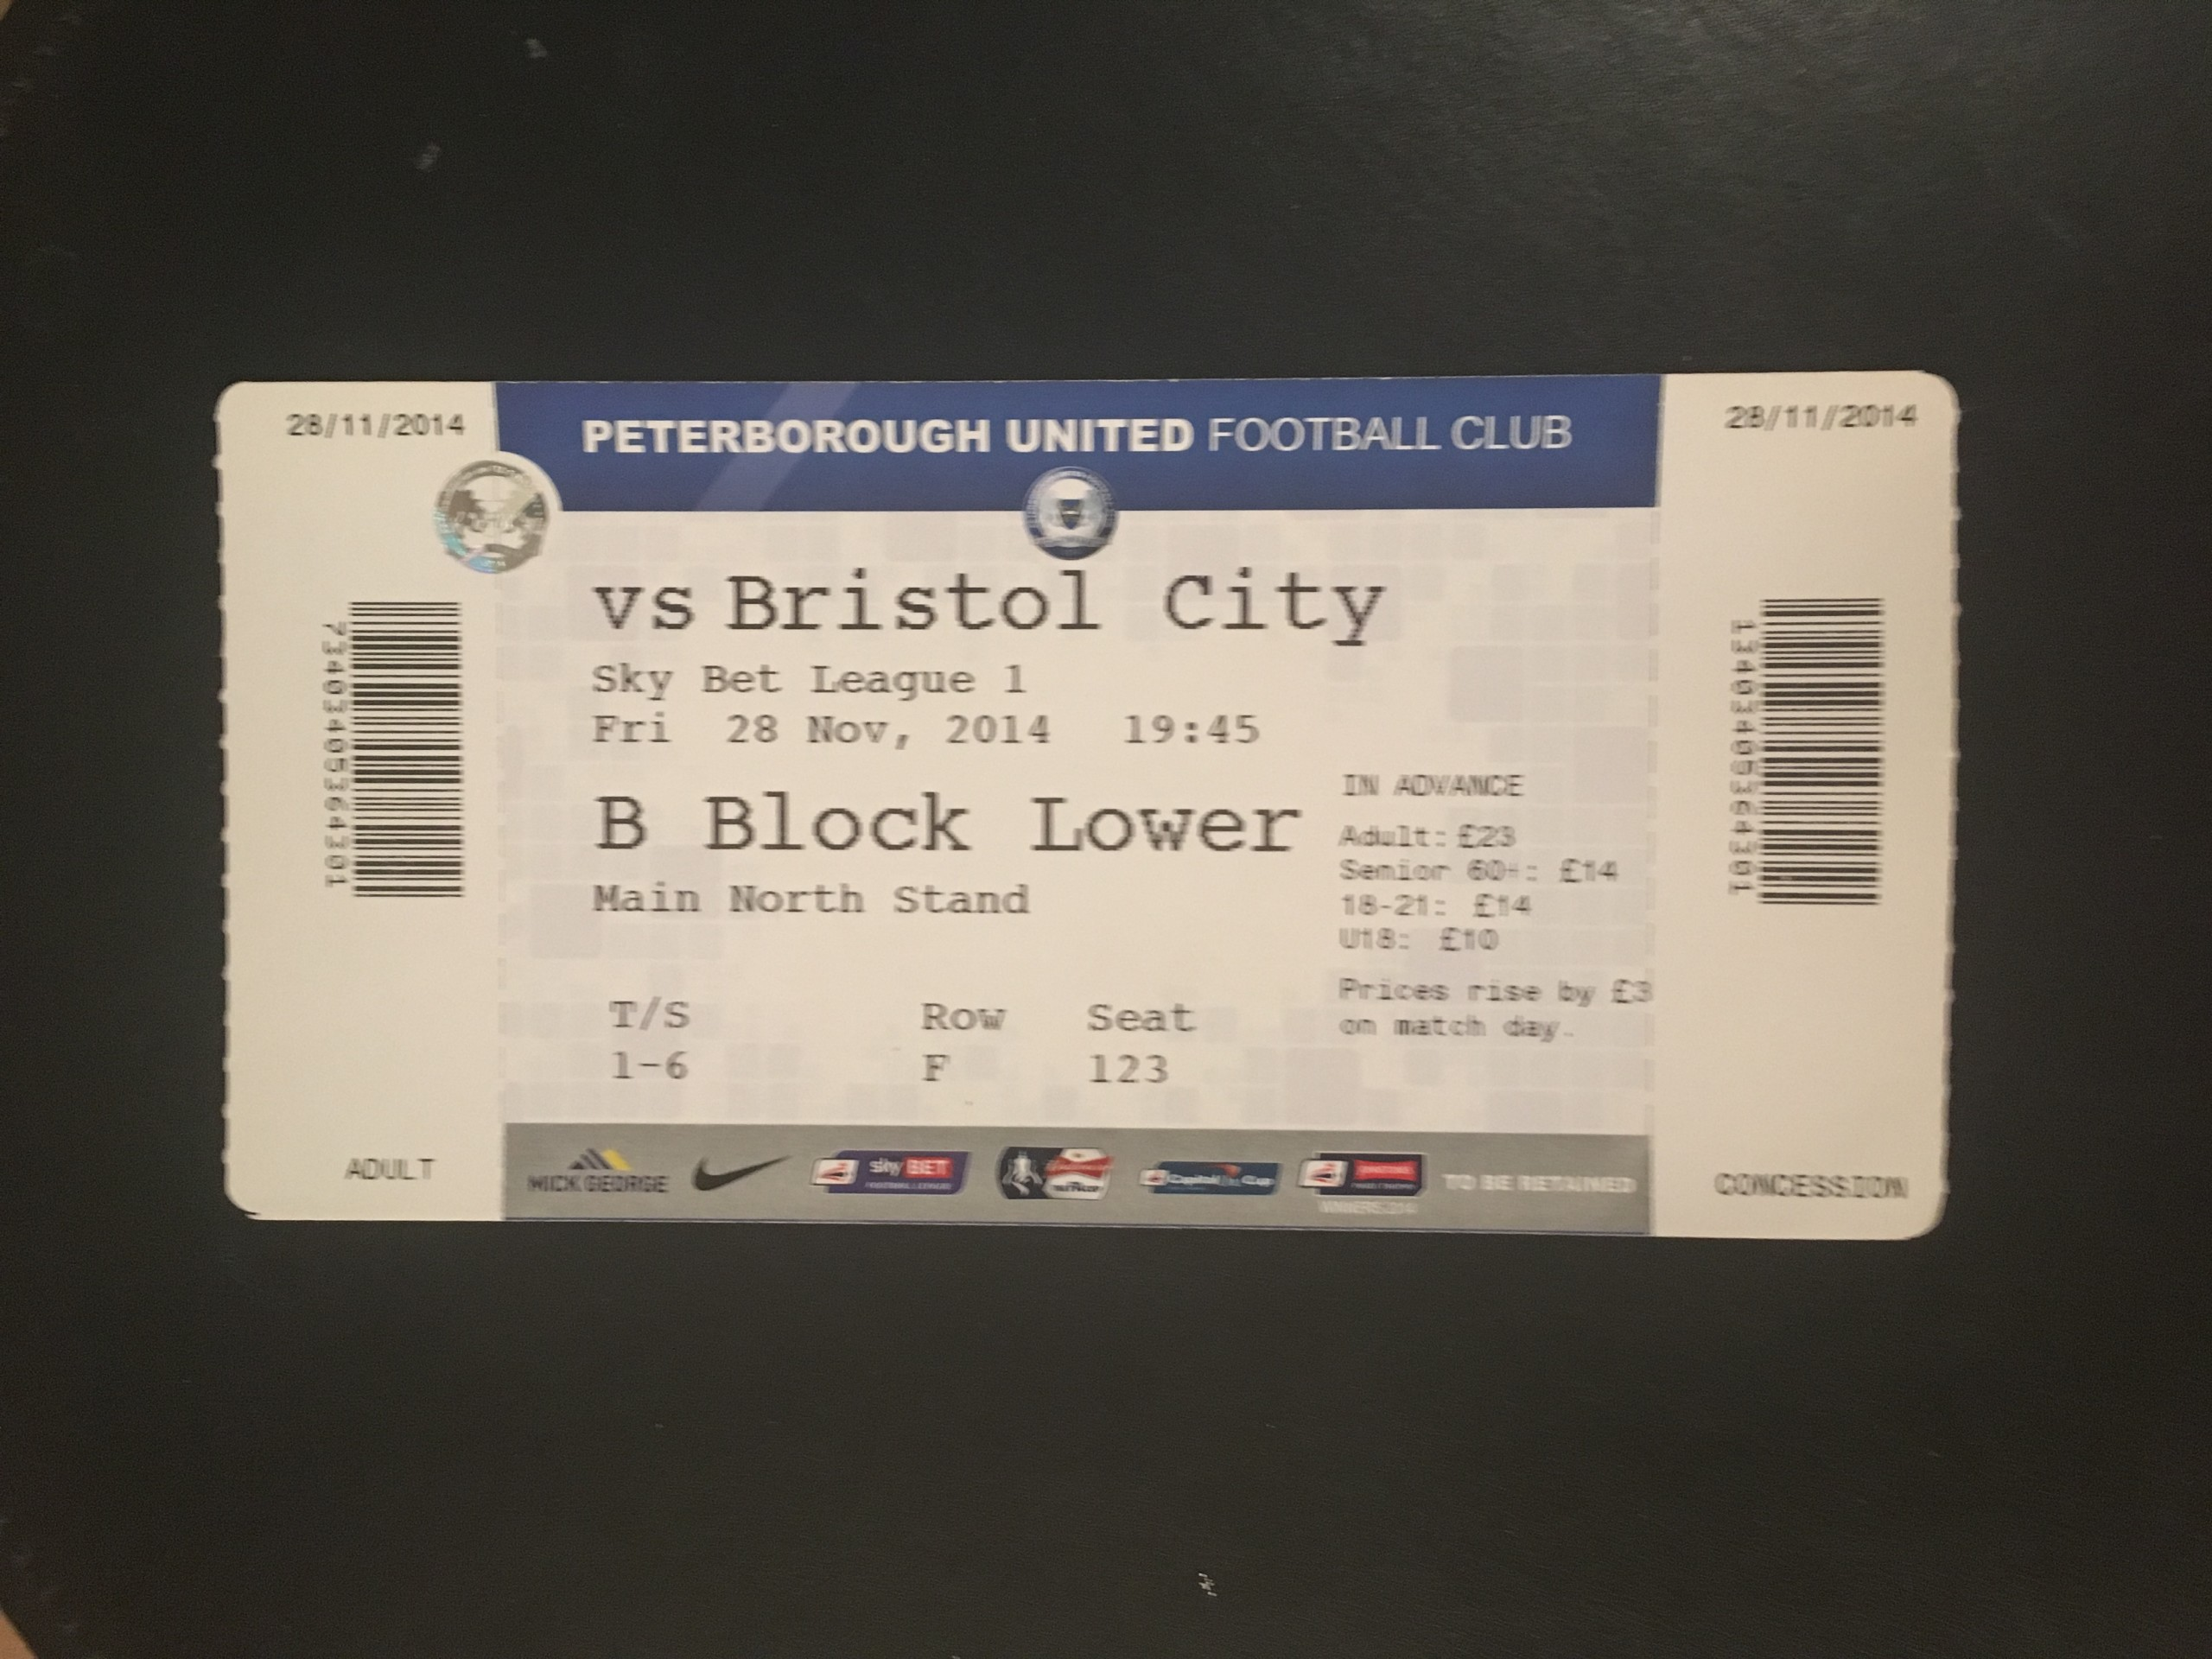 Peterborough United v Bristol City 28-11-2014 Ticket